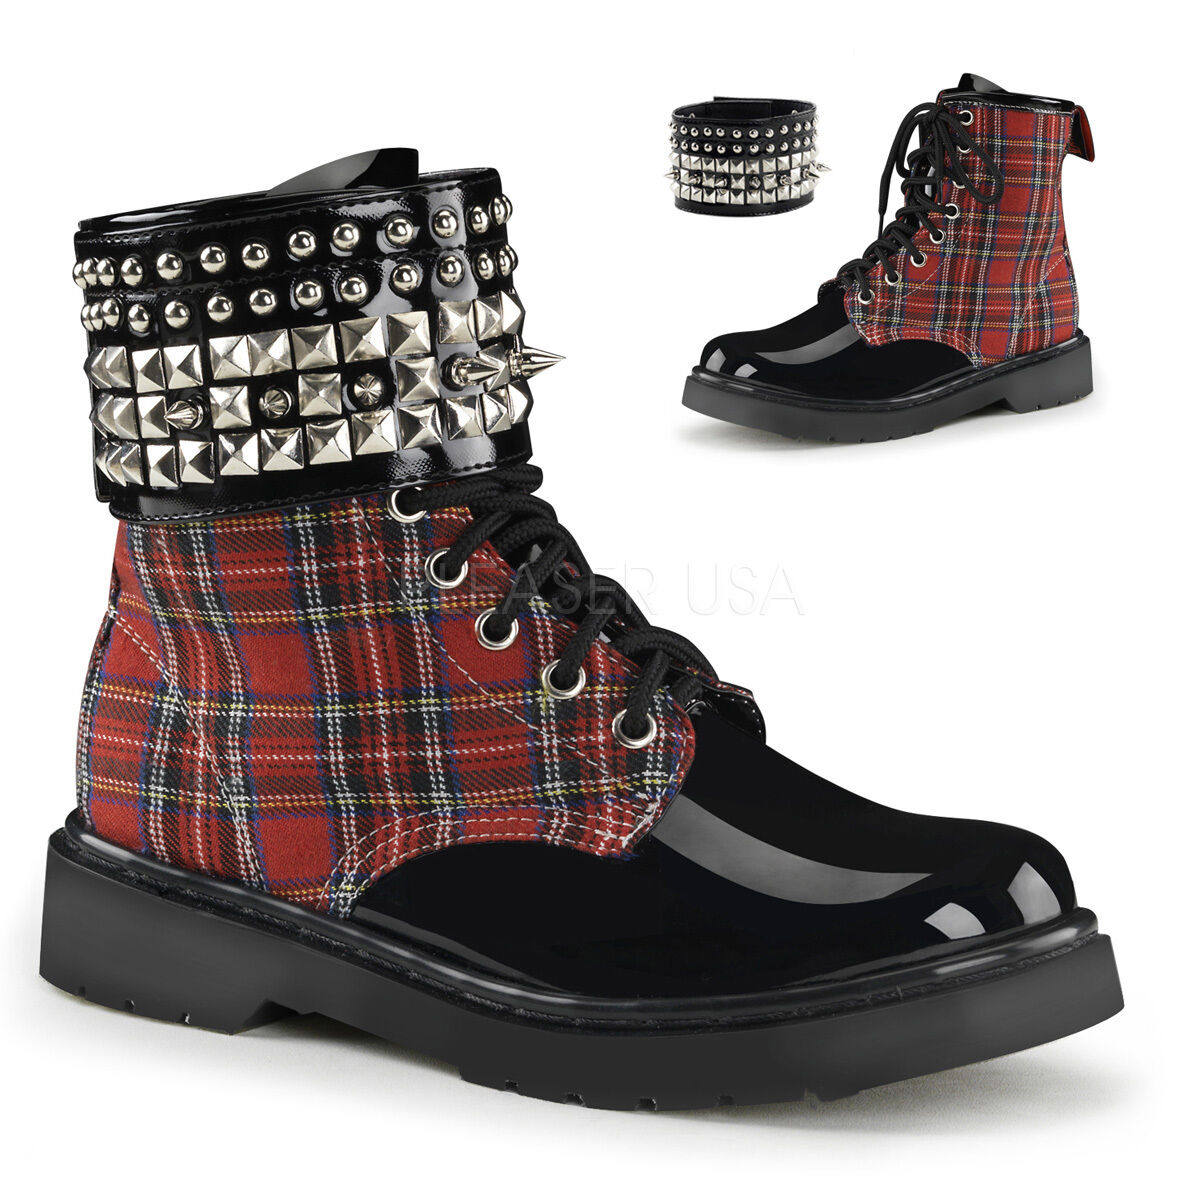 SALE DEMONIA Womens Combat Red Plaid Ankle Boots Detachable Spiked Ankle Band